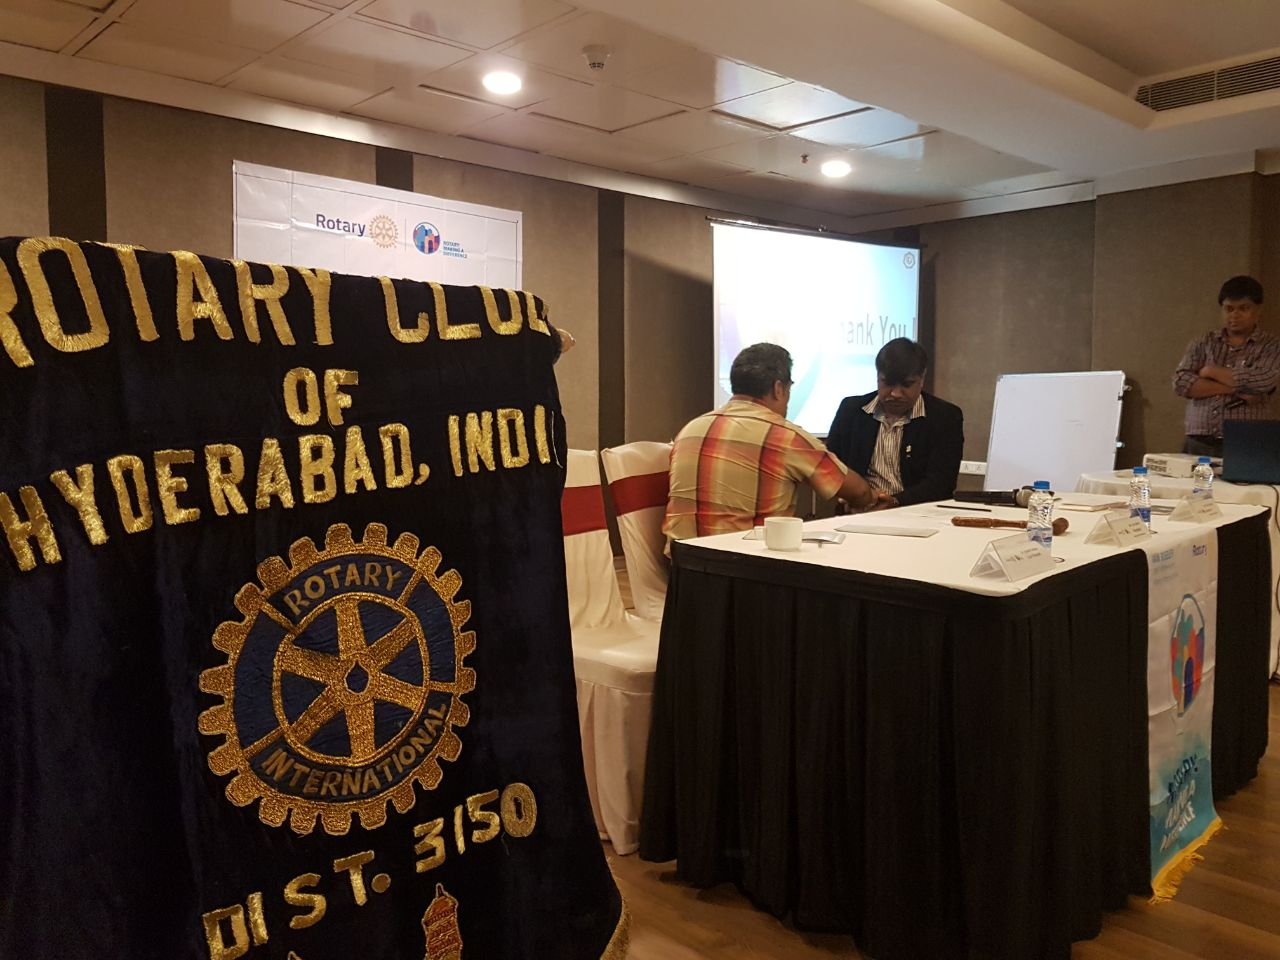 LECTURE IN ROTARY CLUB